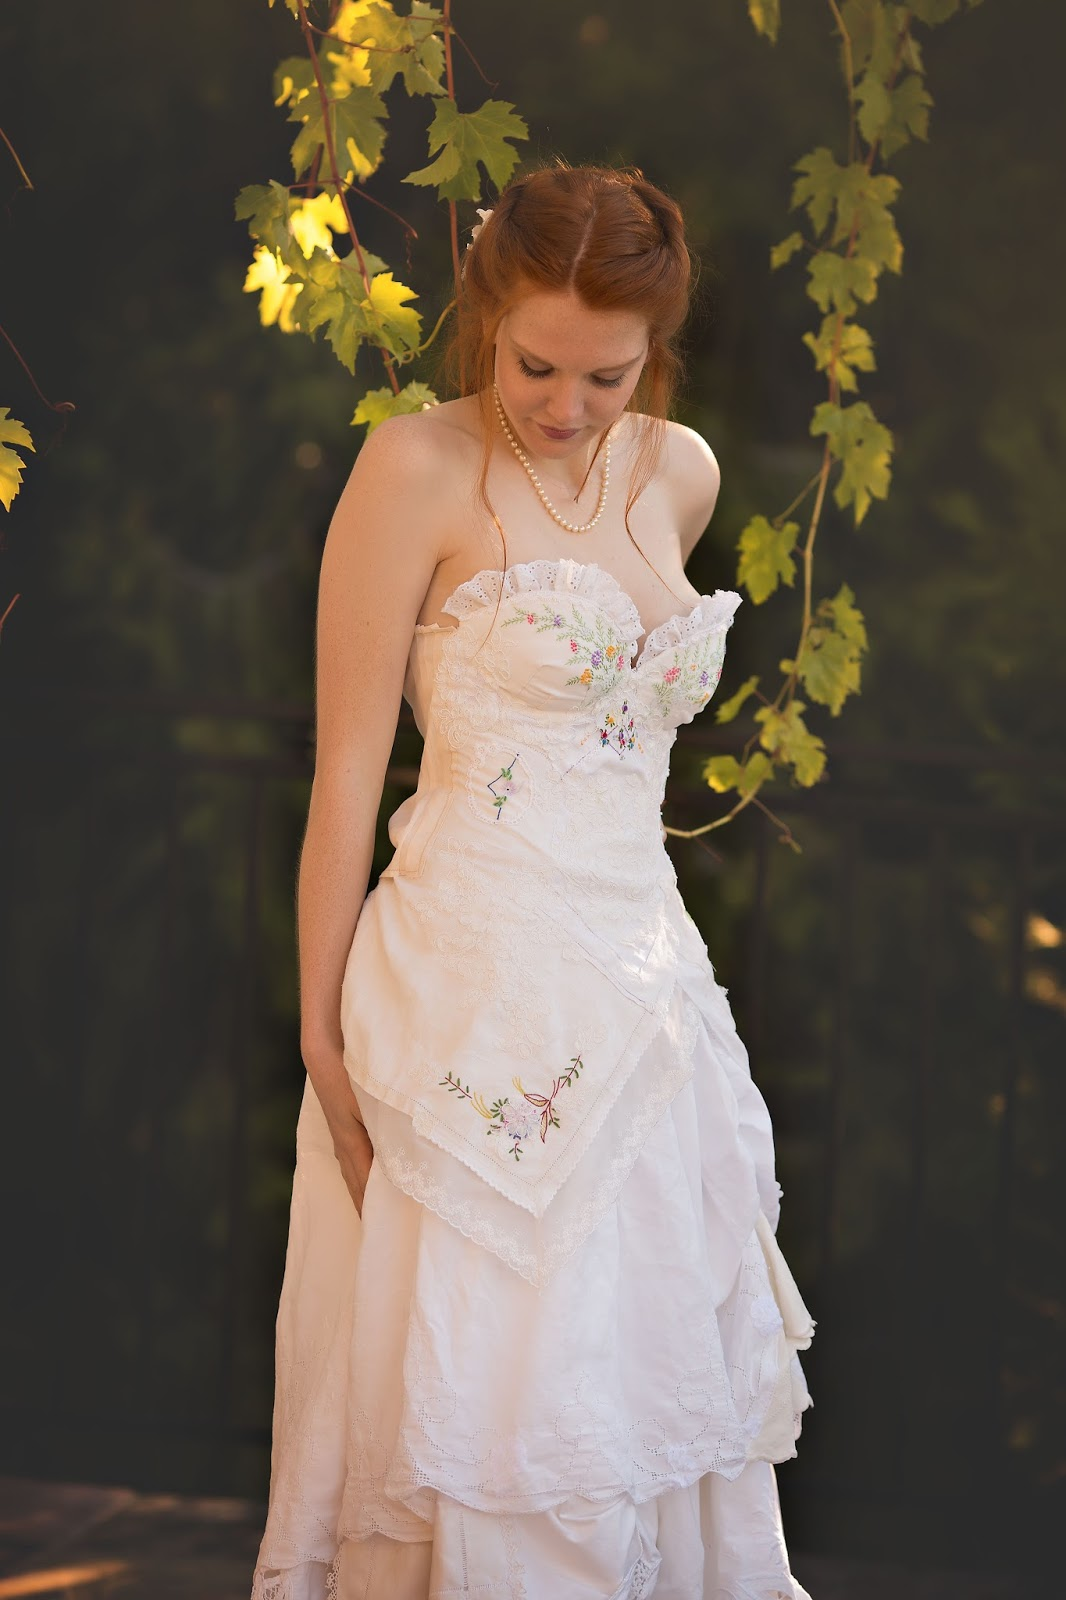 Embroidered Spring Wildflower Corseted Wedding Gown Rustic Woodland Meadow Bridal